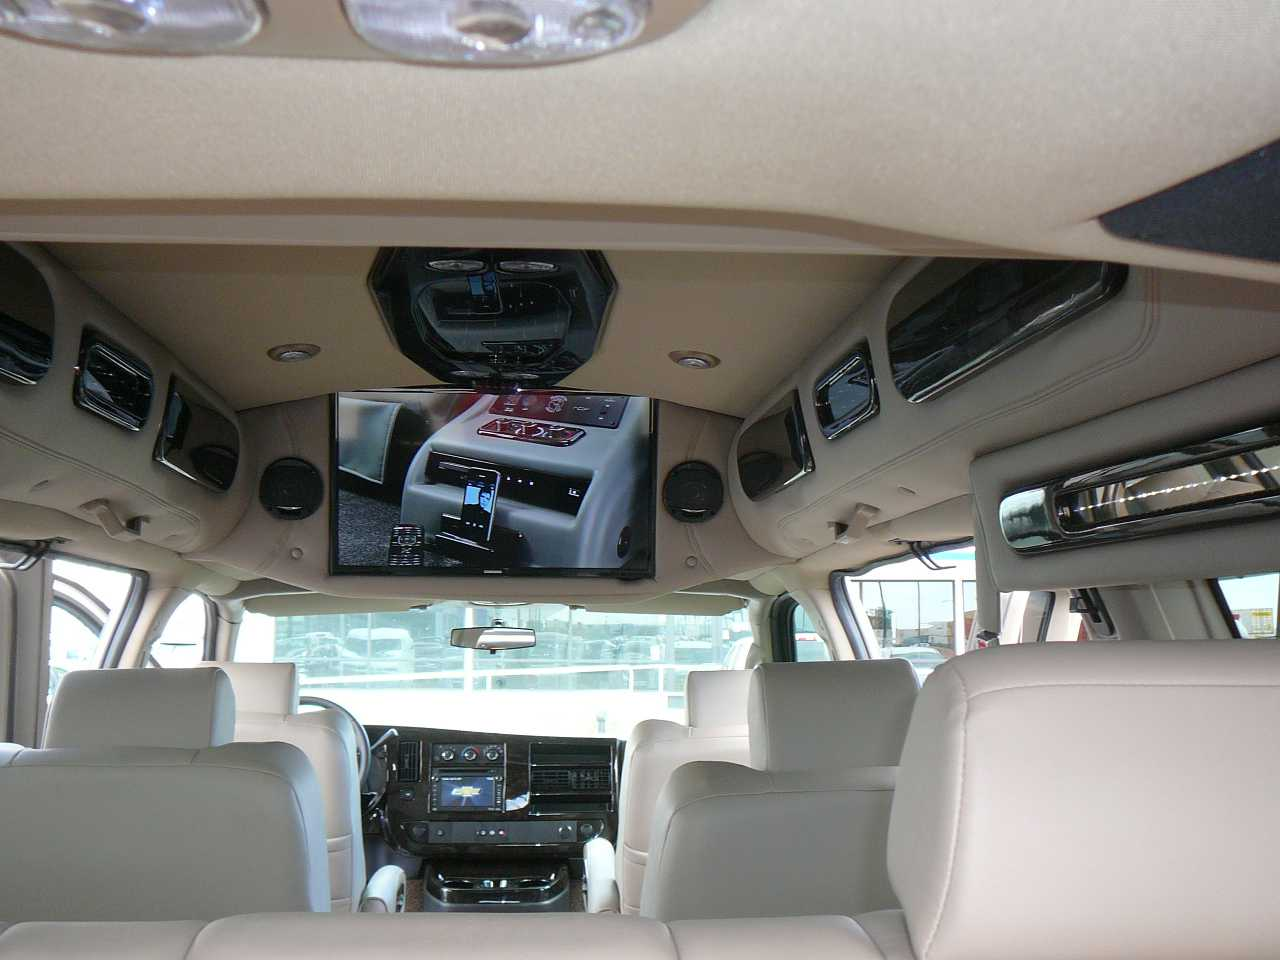 2014 Explorer Van Conversion Chevrolet Express Explorer